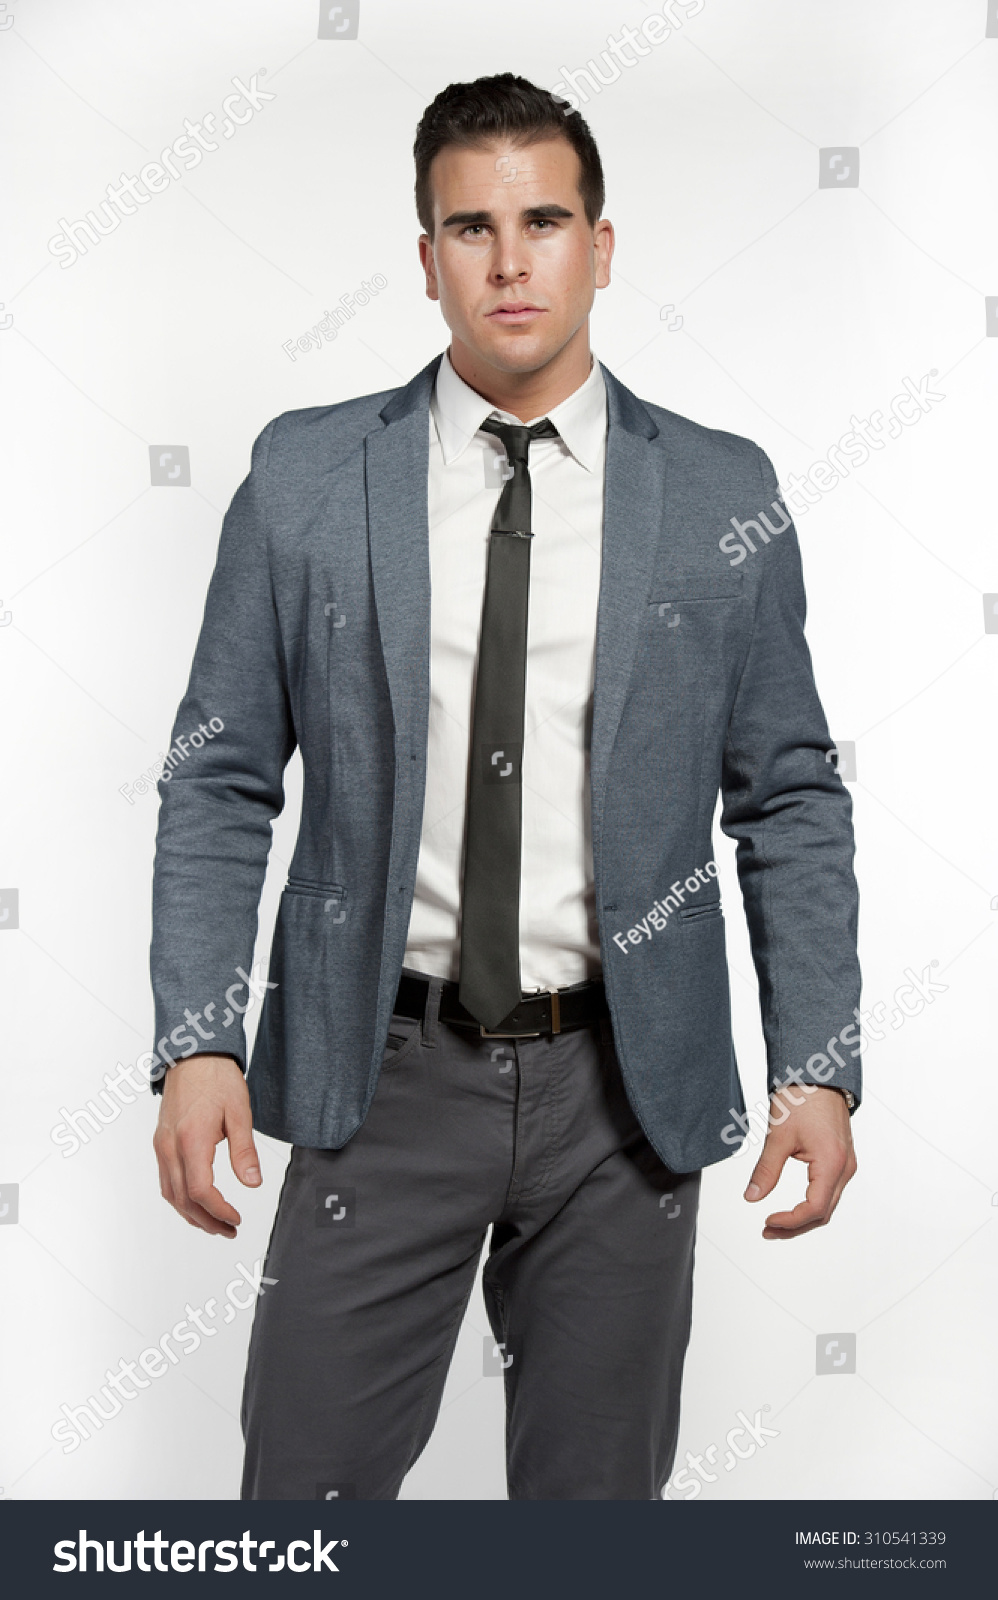 Attractive White Male Wearing Fitted Gray Stock Photo 310541339 ...